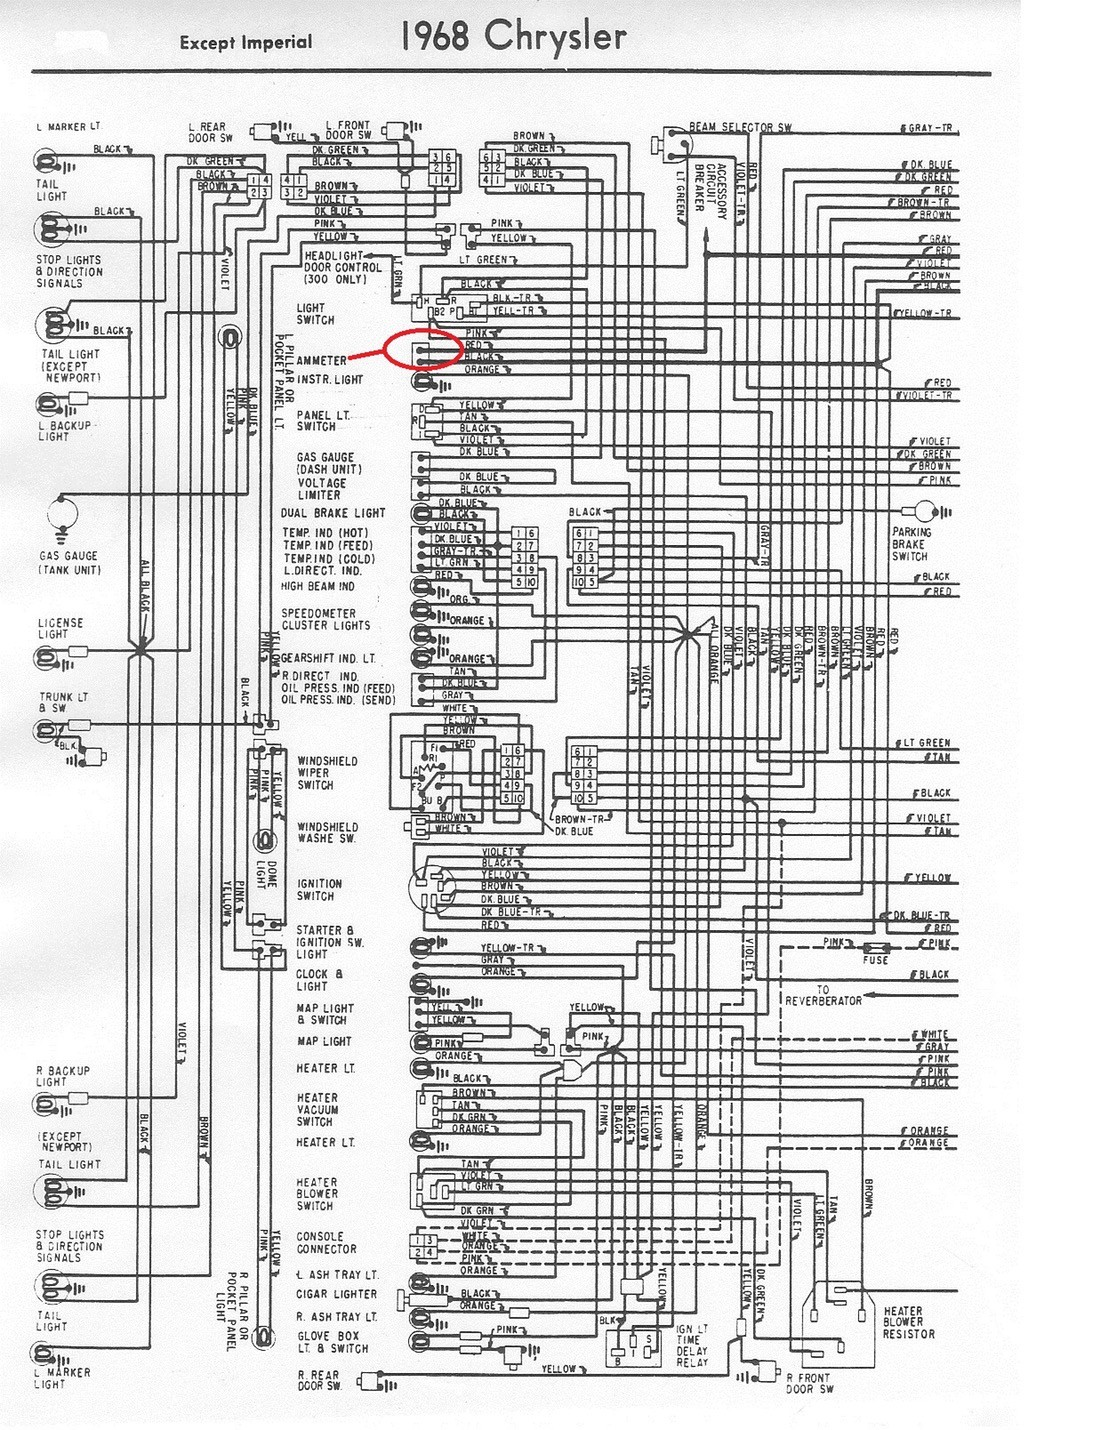 mopar electronic ignition conversion wiring diagram simple food chain